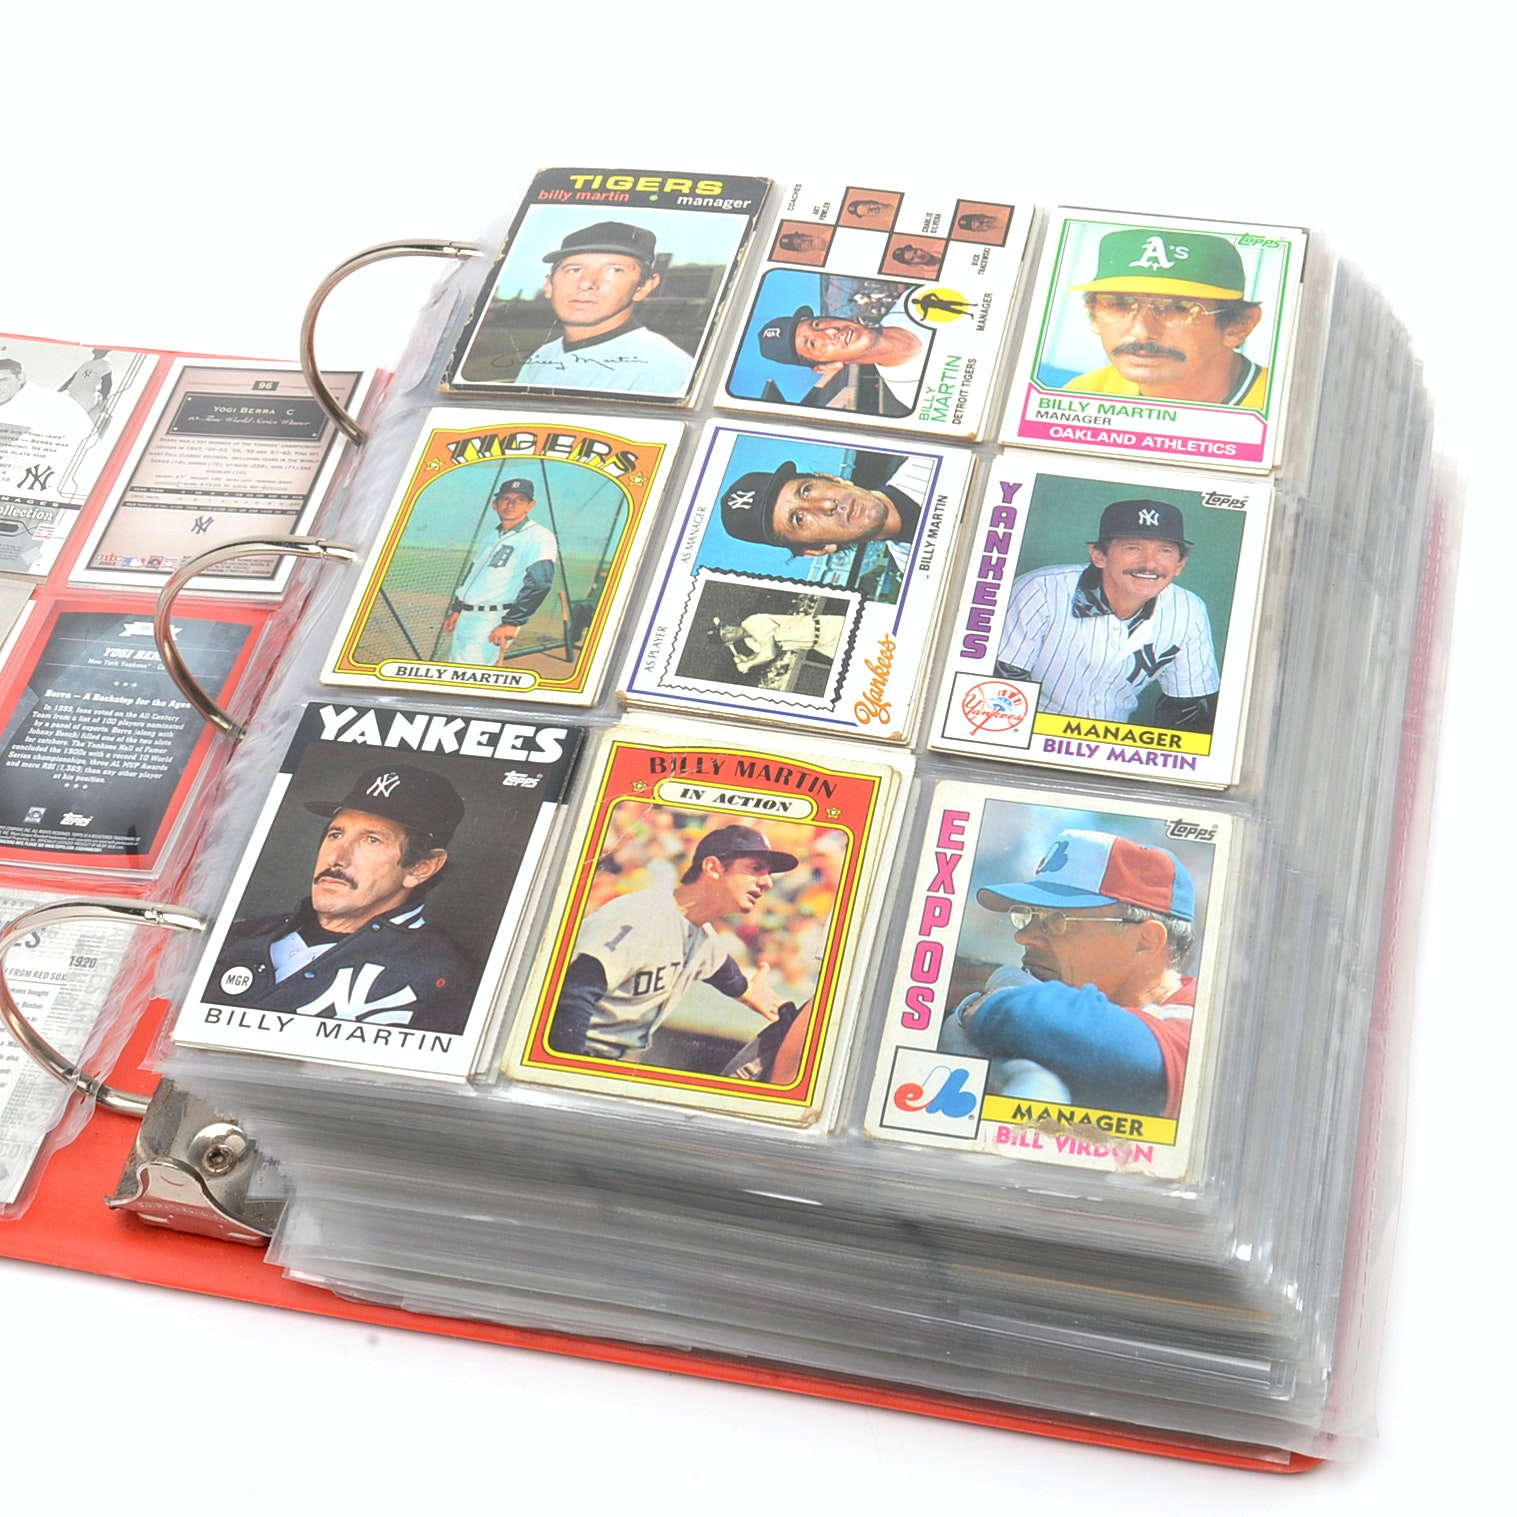 Large Binder Filled With 1970s-2000s Baseball Cards